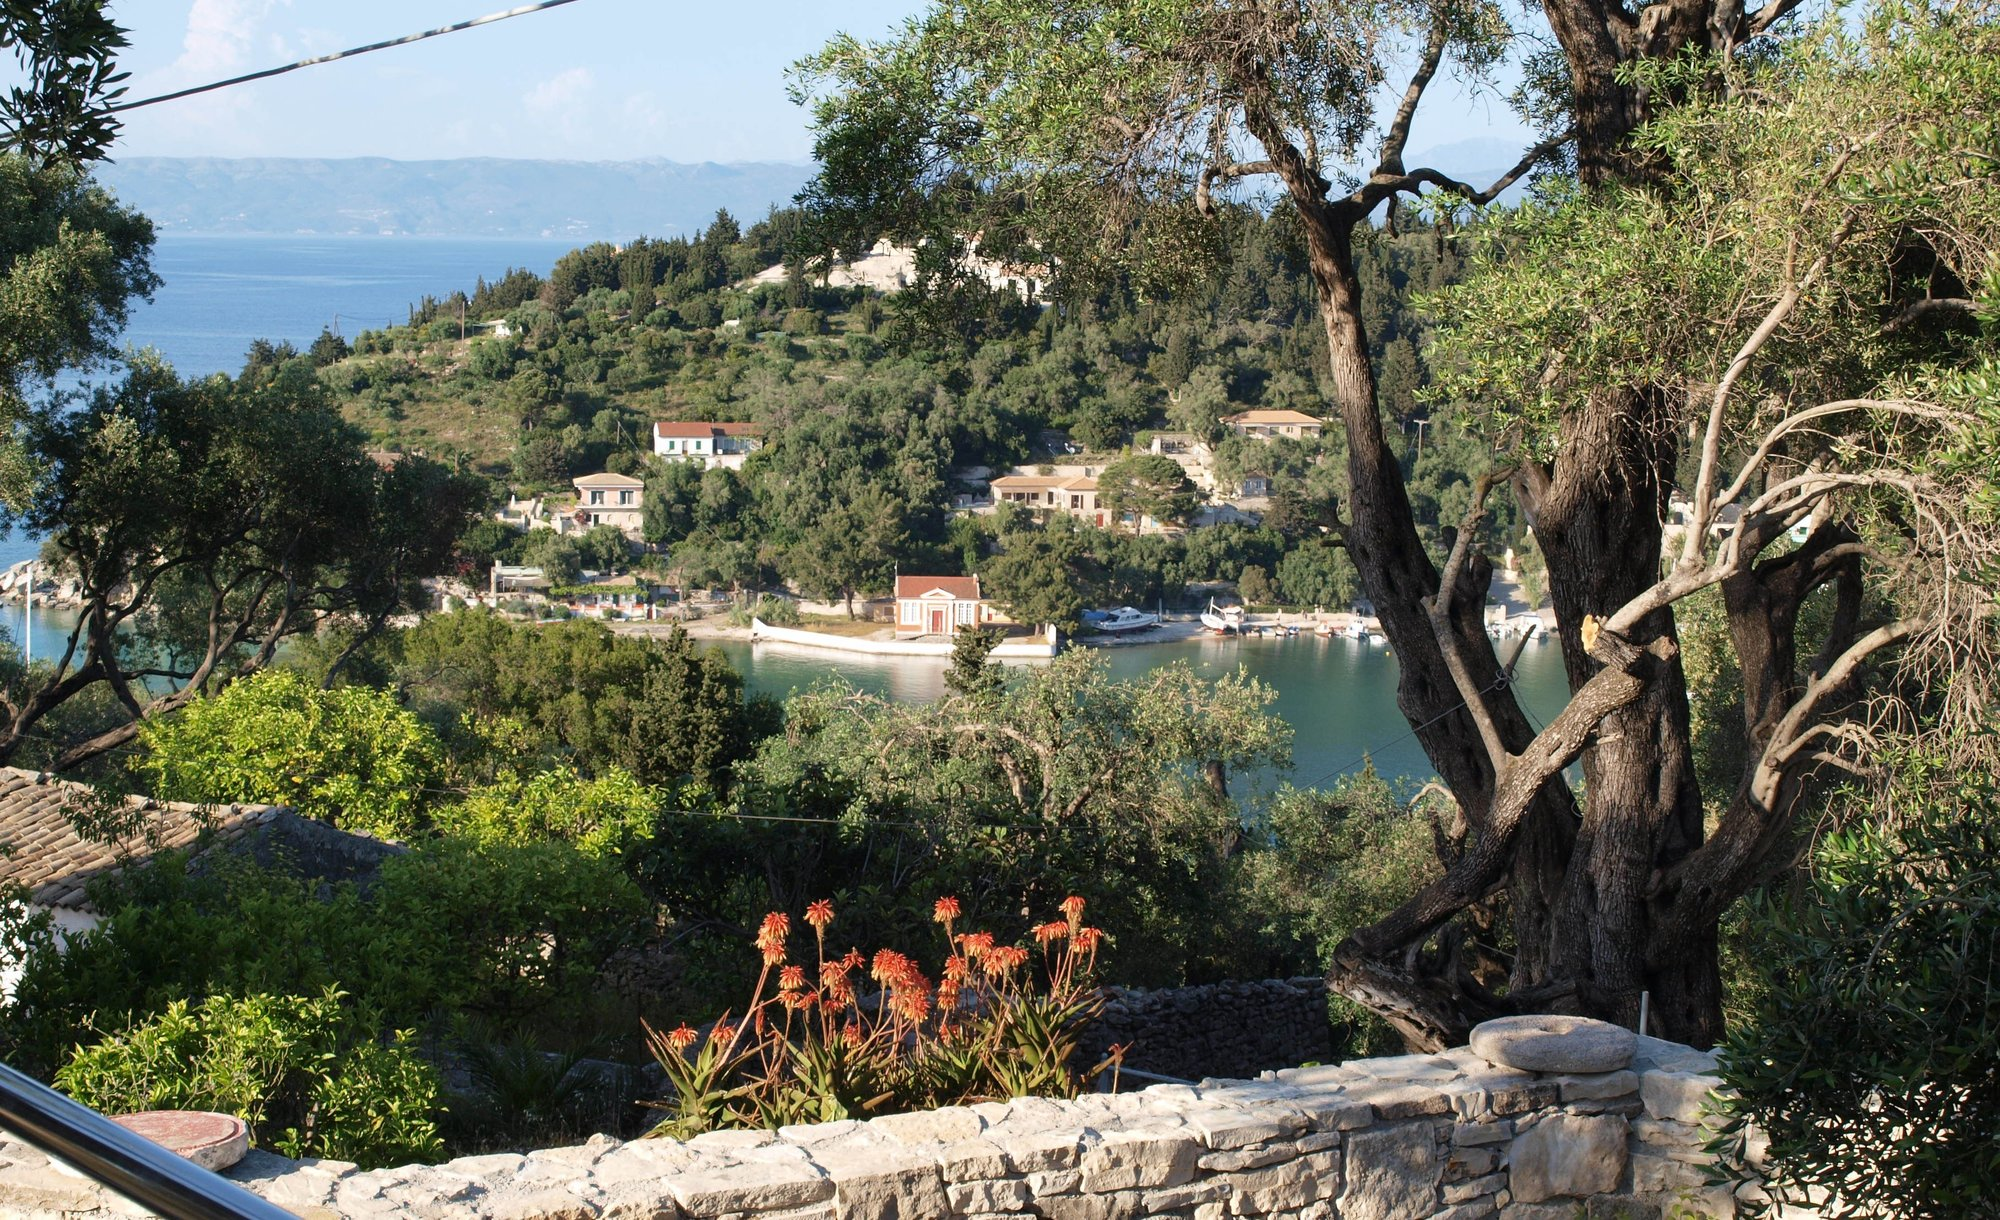 View over Lakka Bay